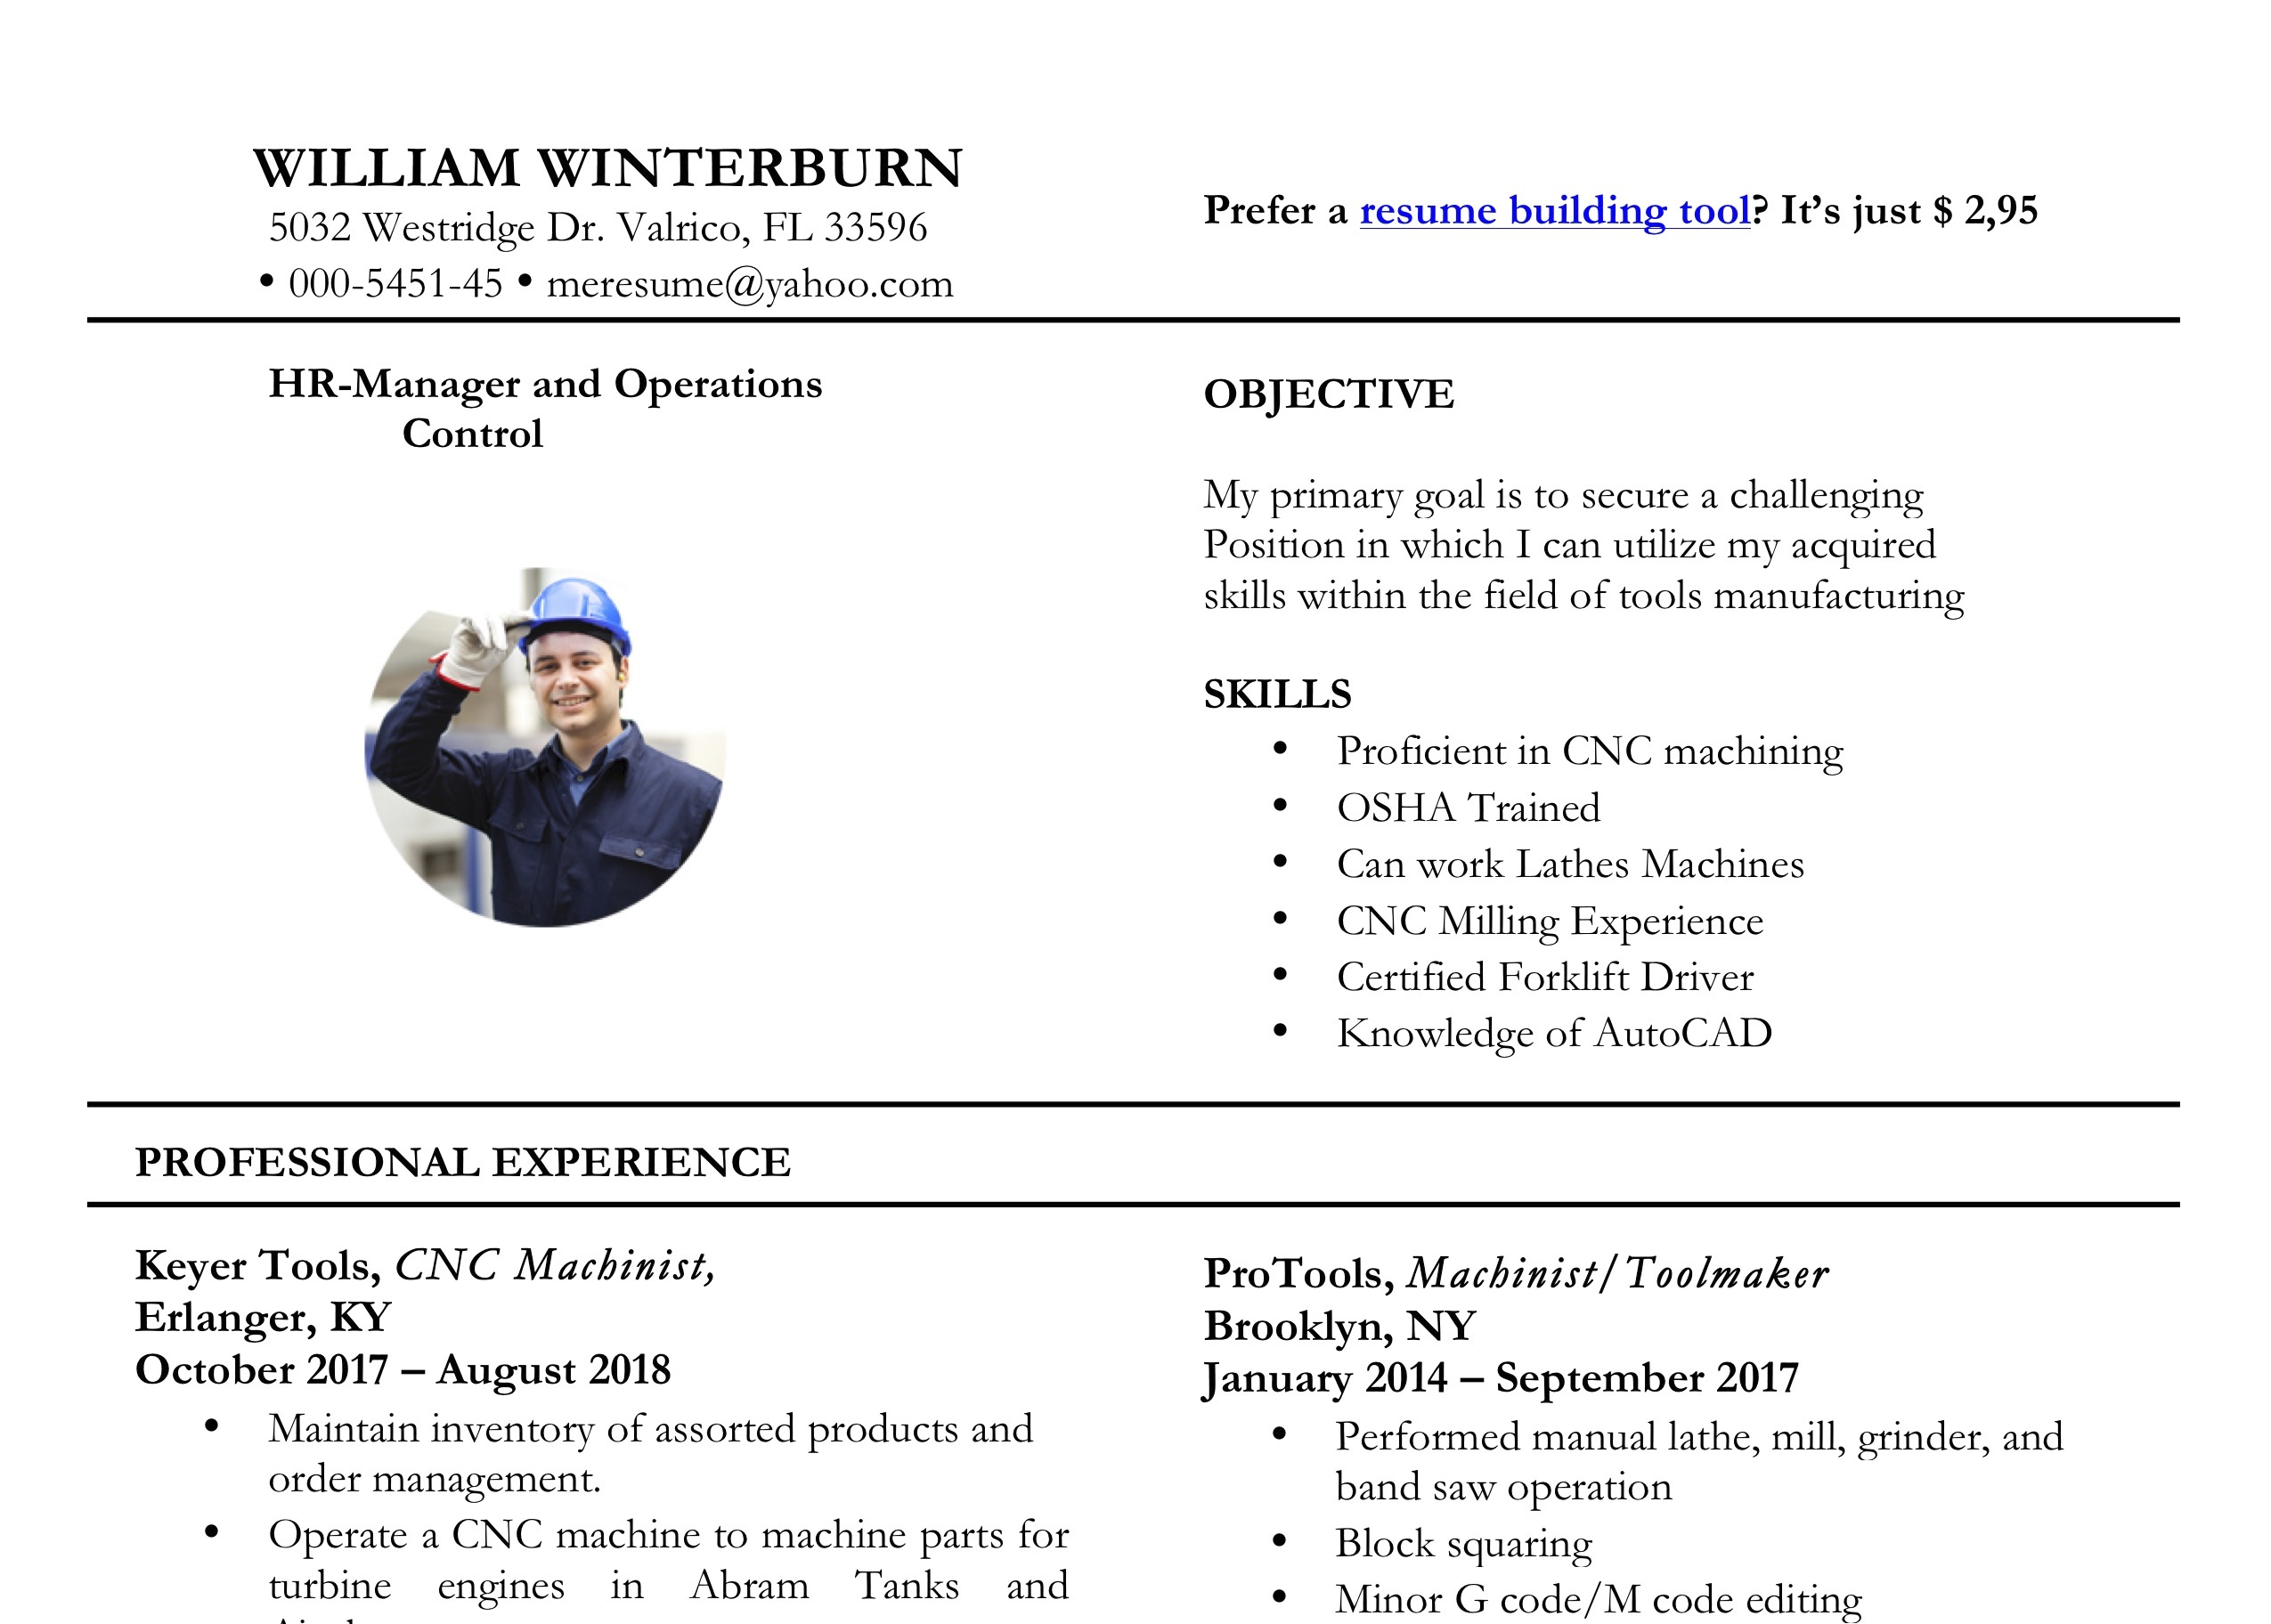 Free Word Resume Templates by ResumeViking.com